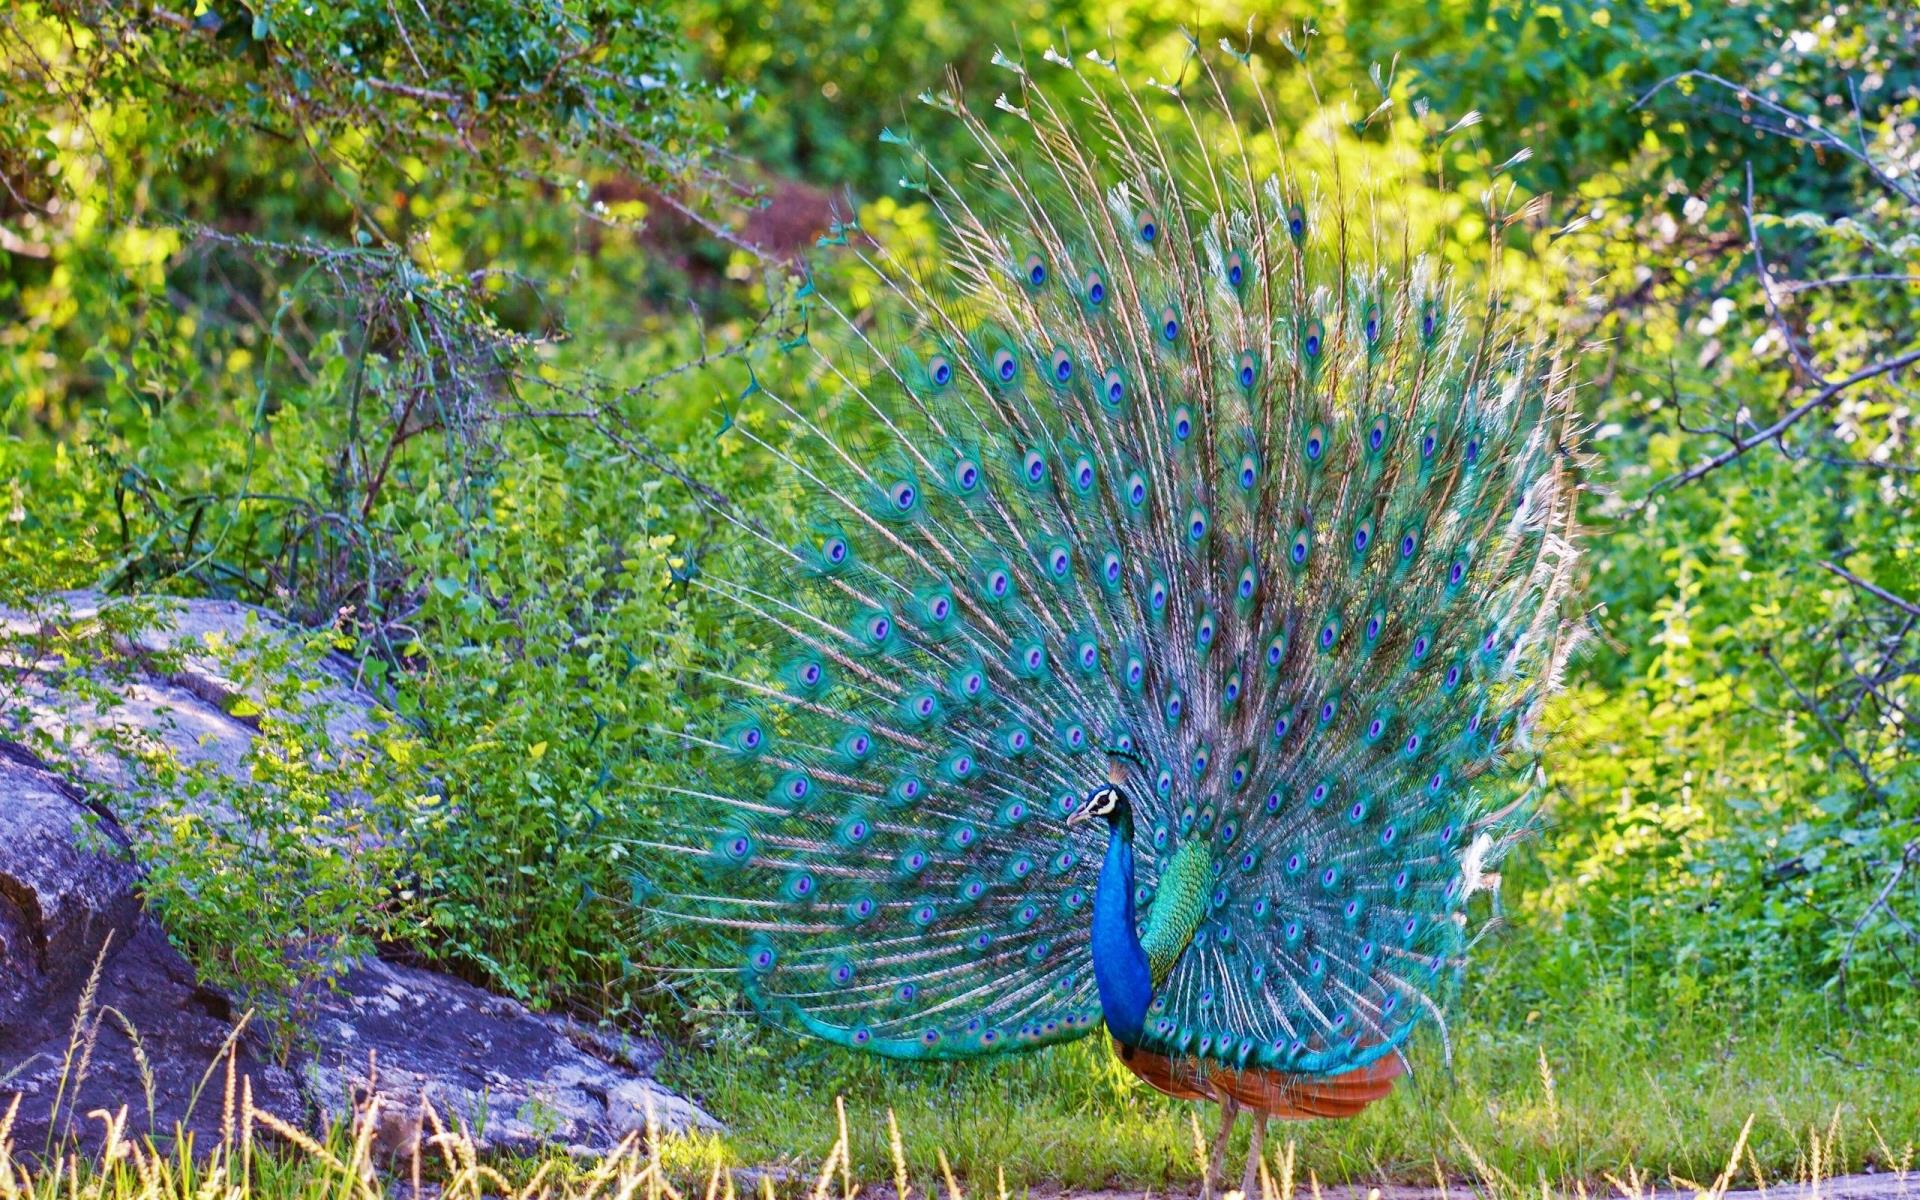 peacock hd images